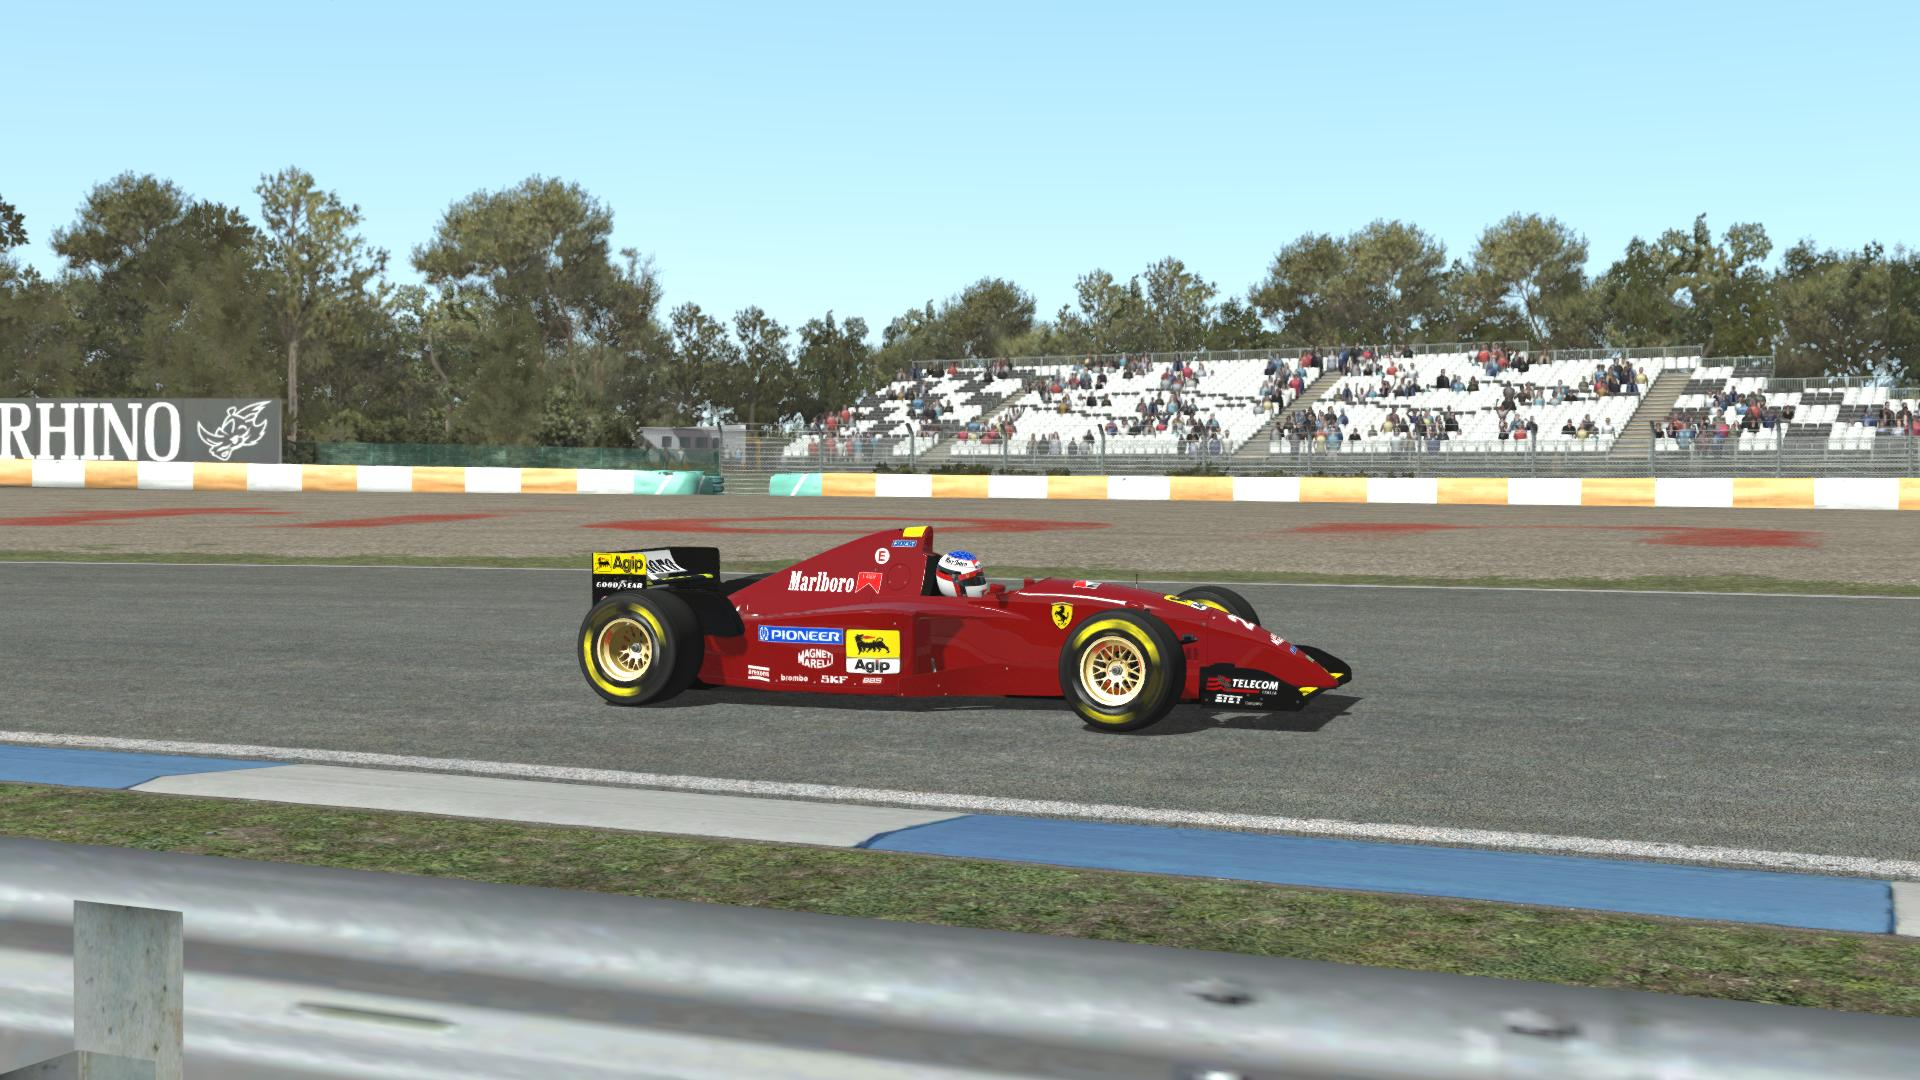 Rfactor 2 Ferrari 412T2 @ Estoril